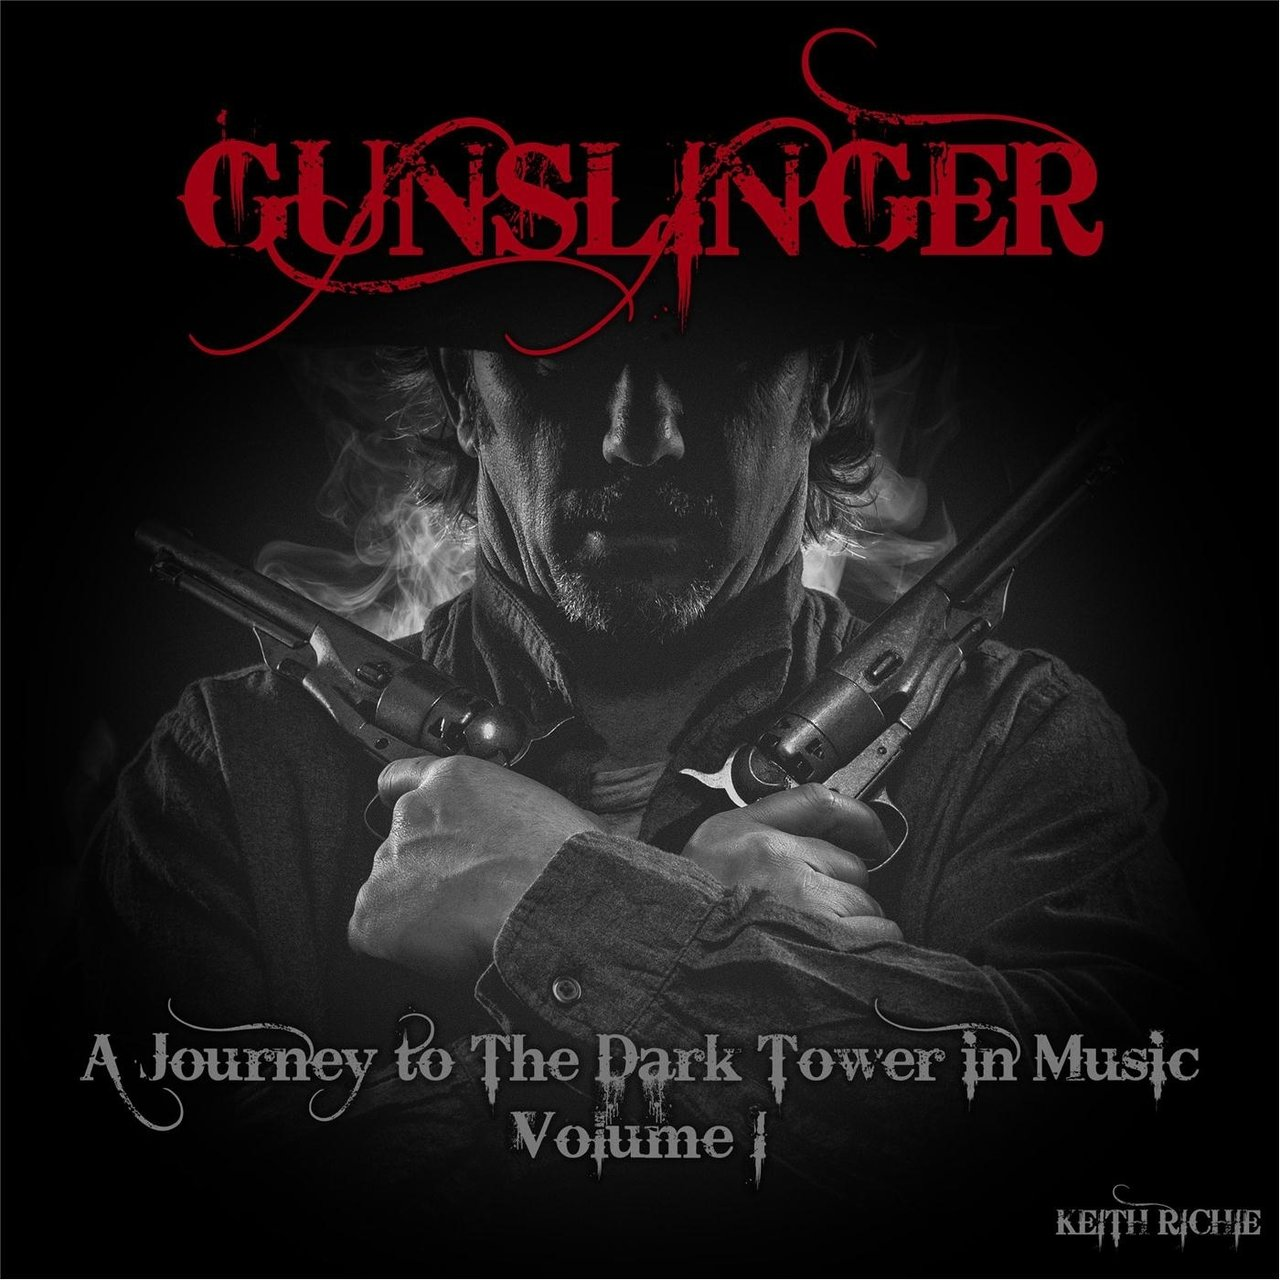 Gunslinger: A Journey to the Dark Tower in Music, Vol. 1